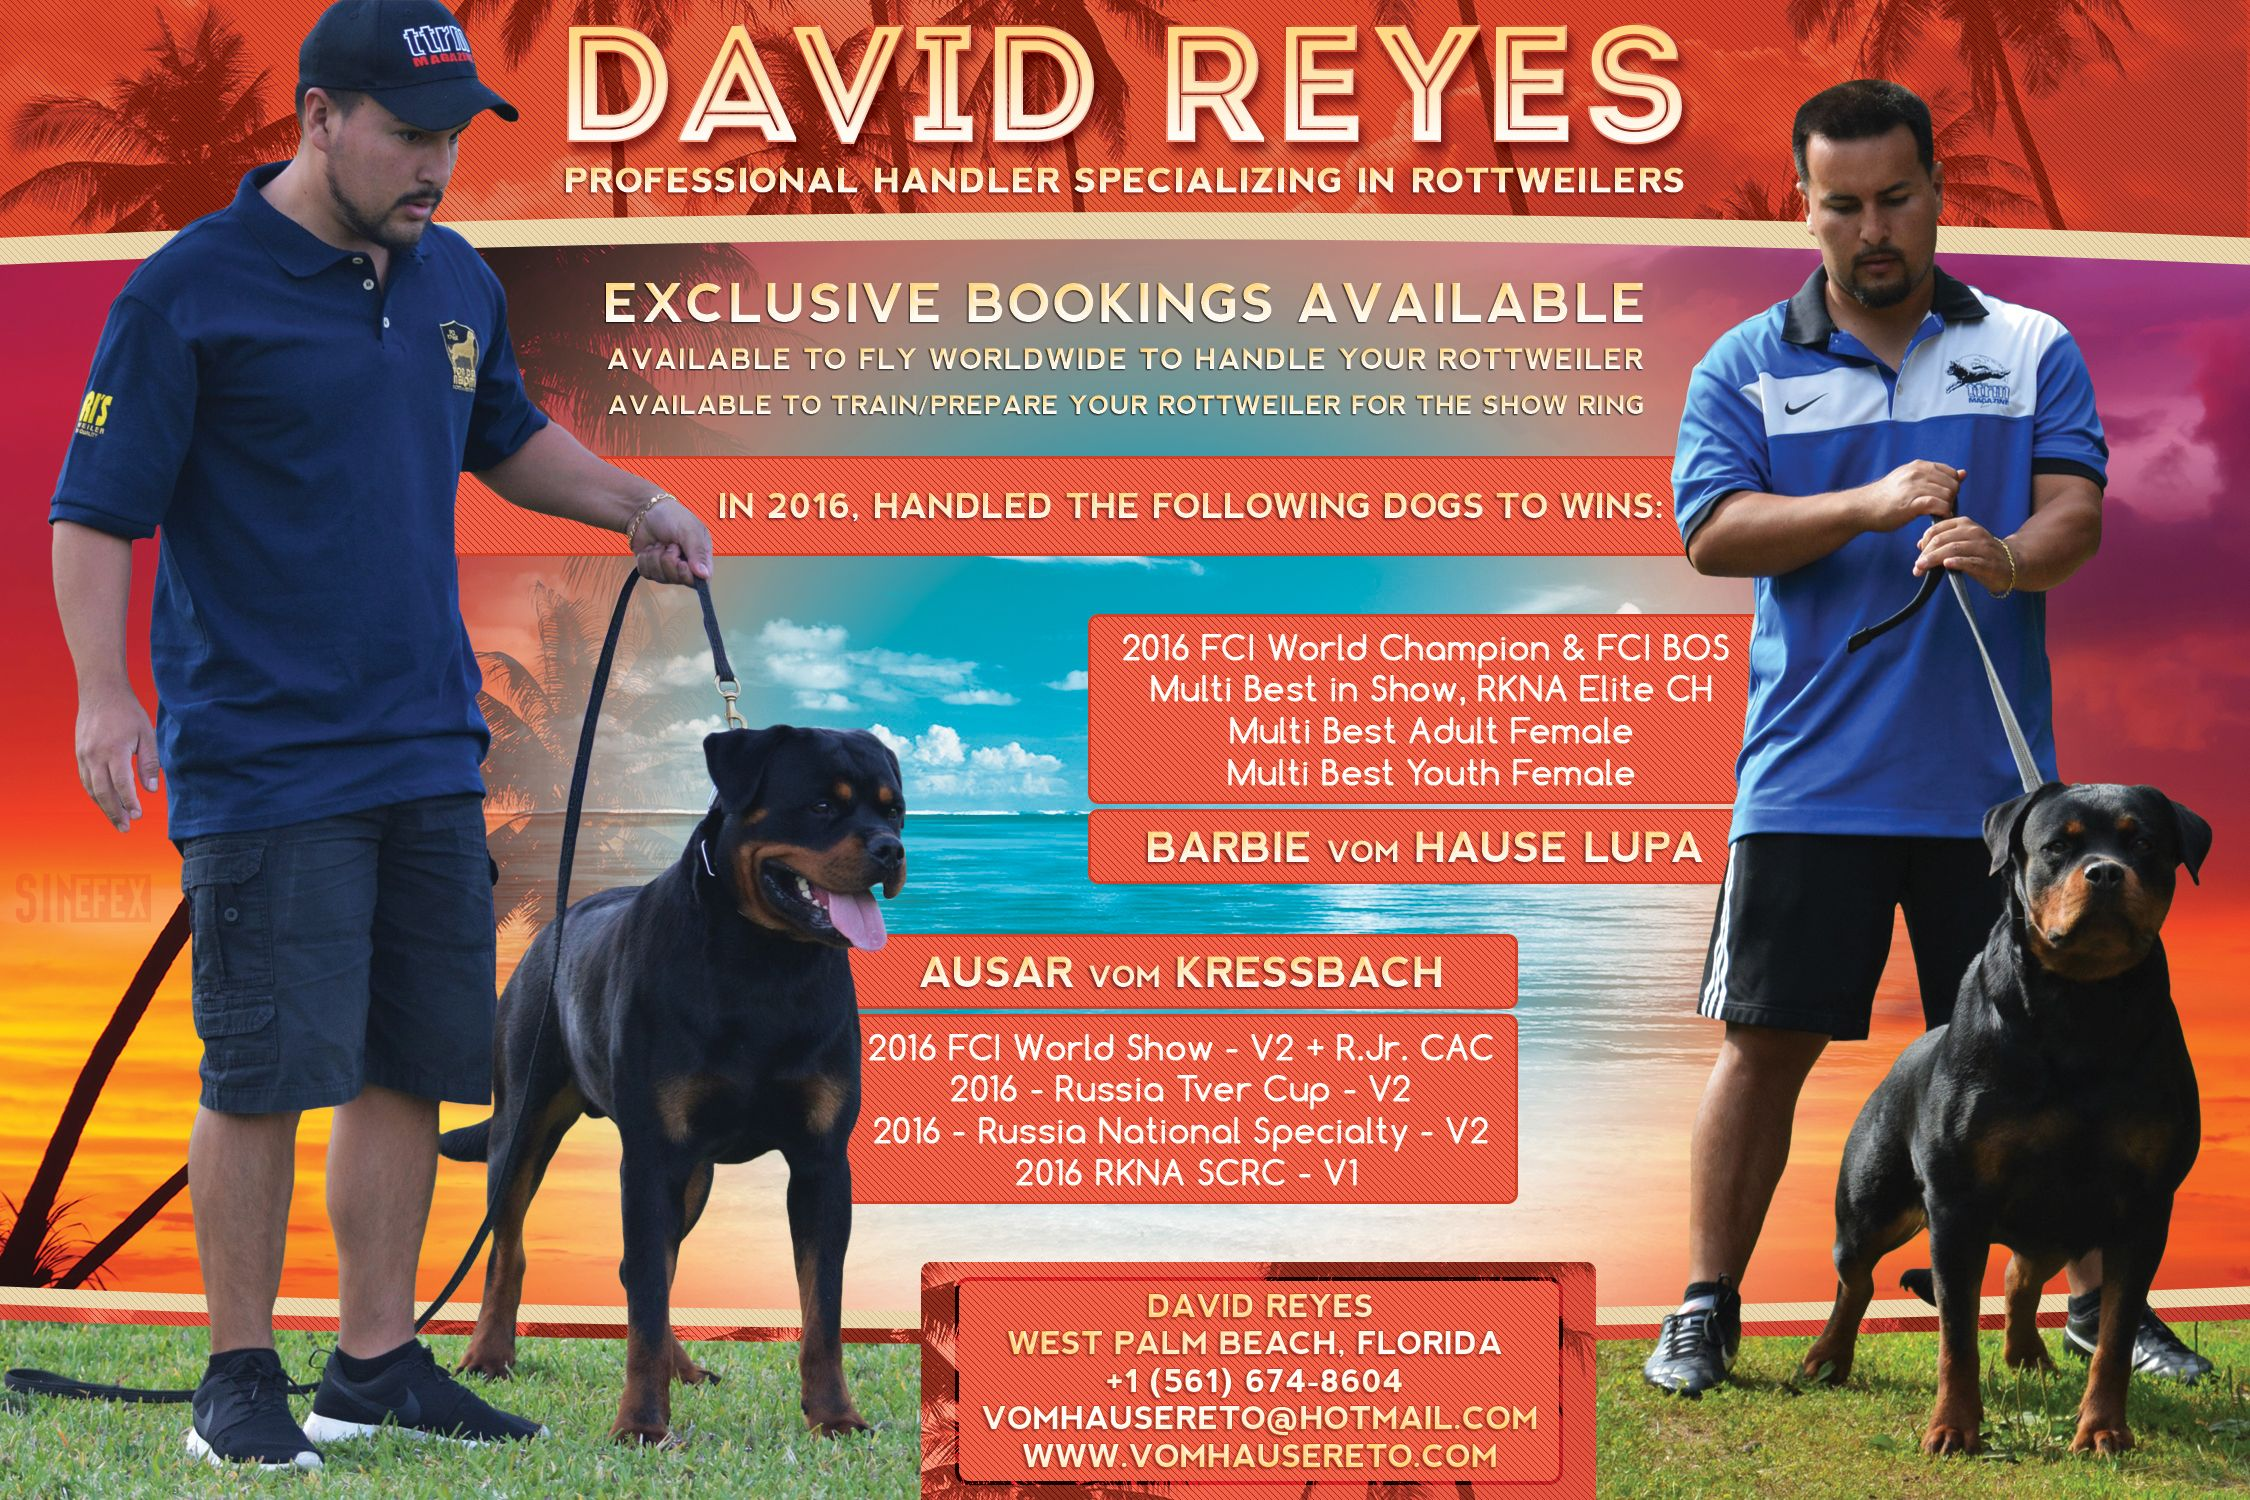 David Reyes Professional Handler Specializing In Rottweilers Stay